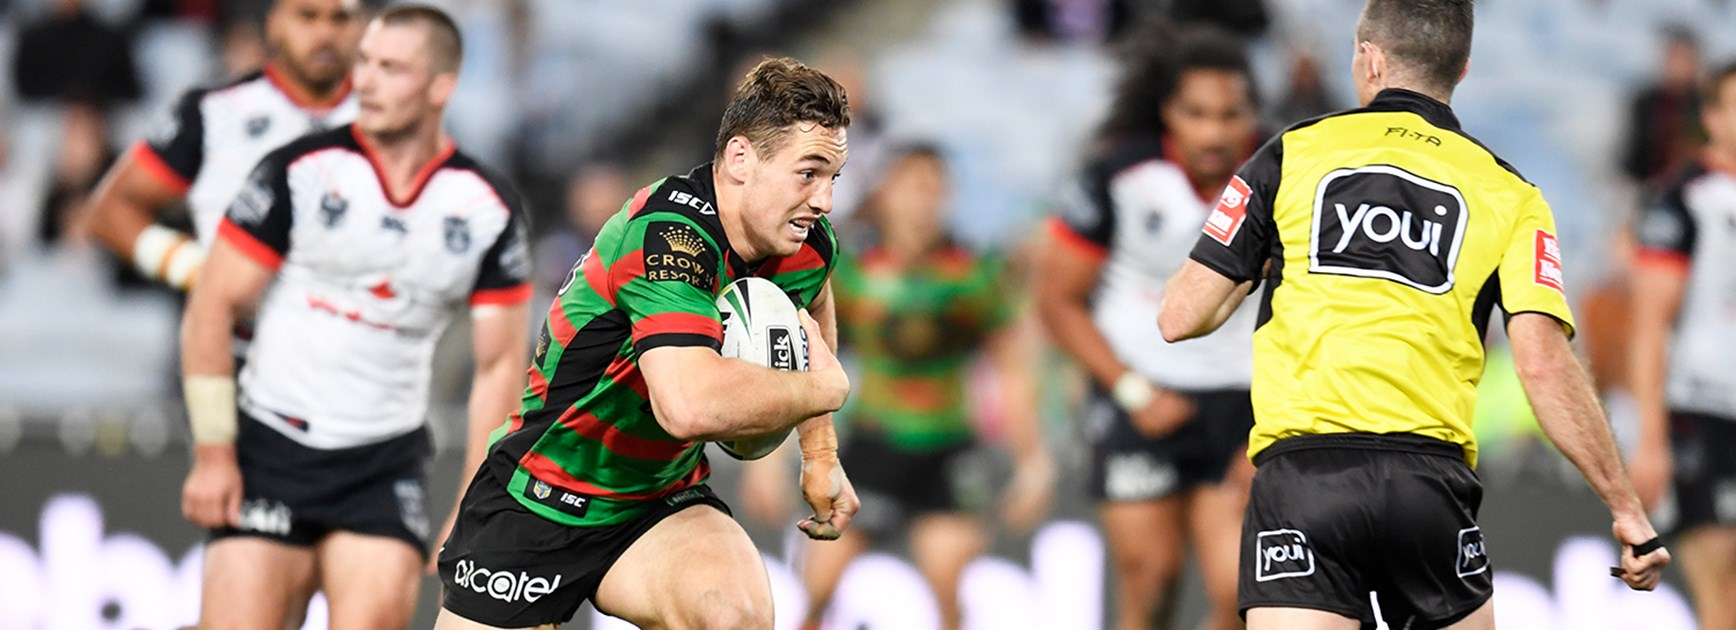 Rabbitohs v Warriors - All you need to know